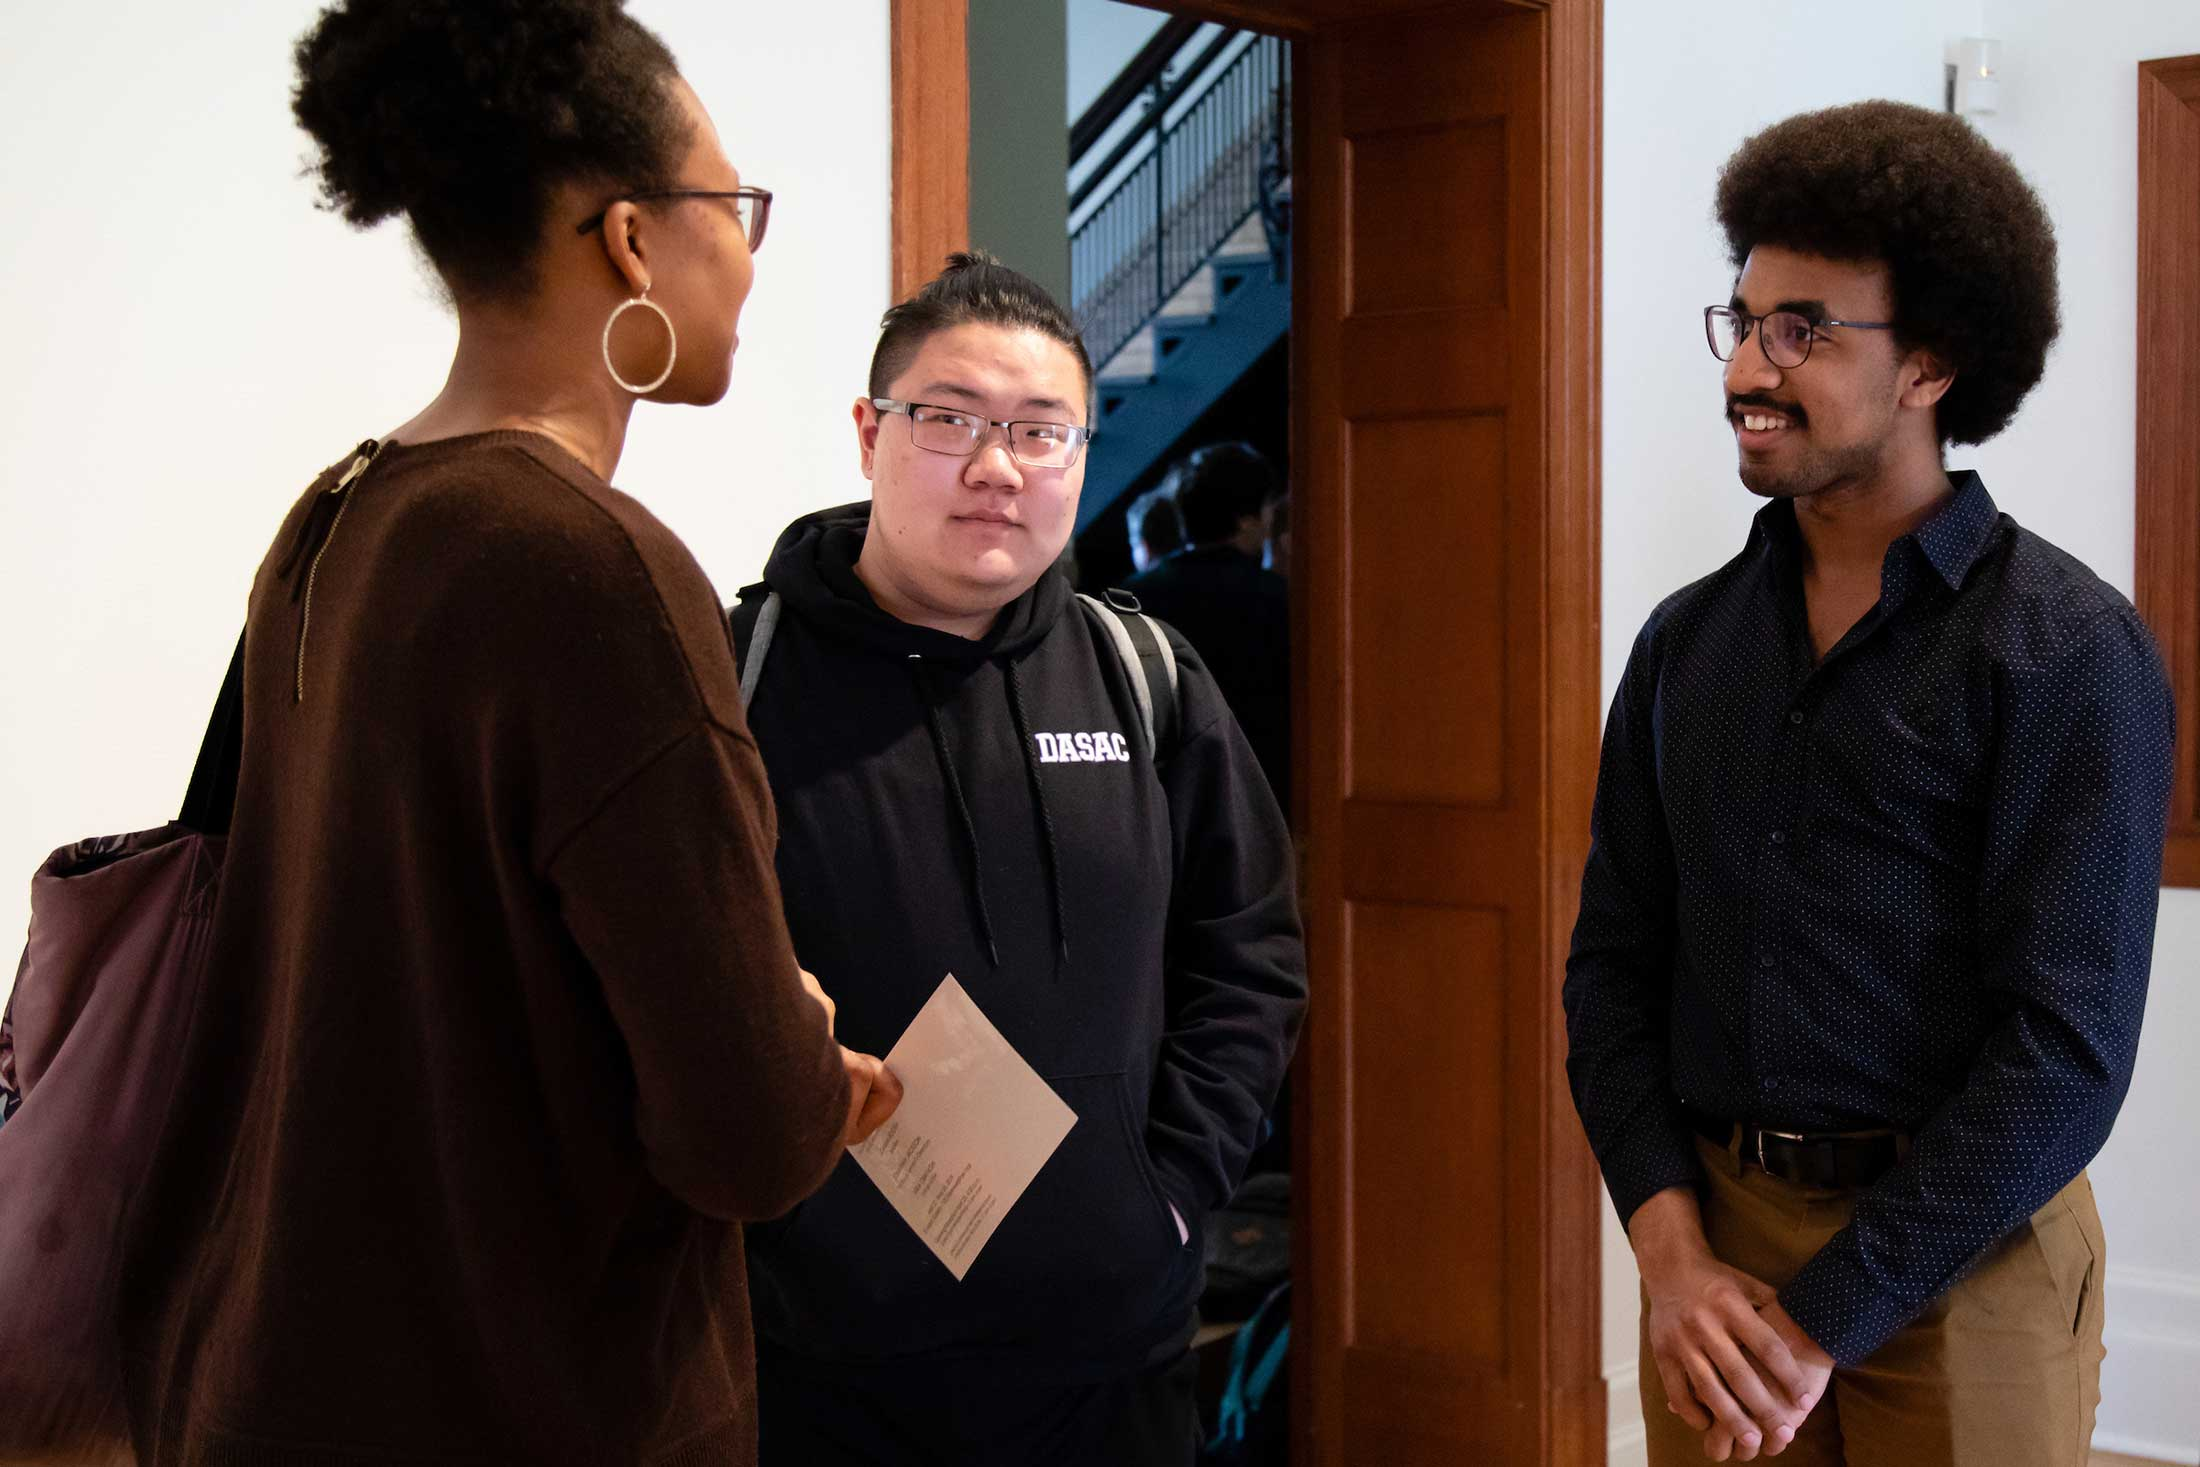 Jonathan Jackson '19 (right) at the reception for 3 graduating artists